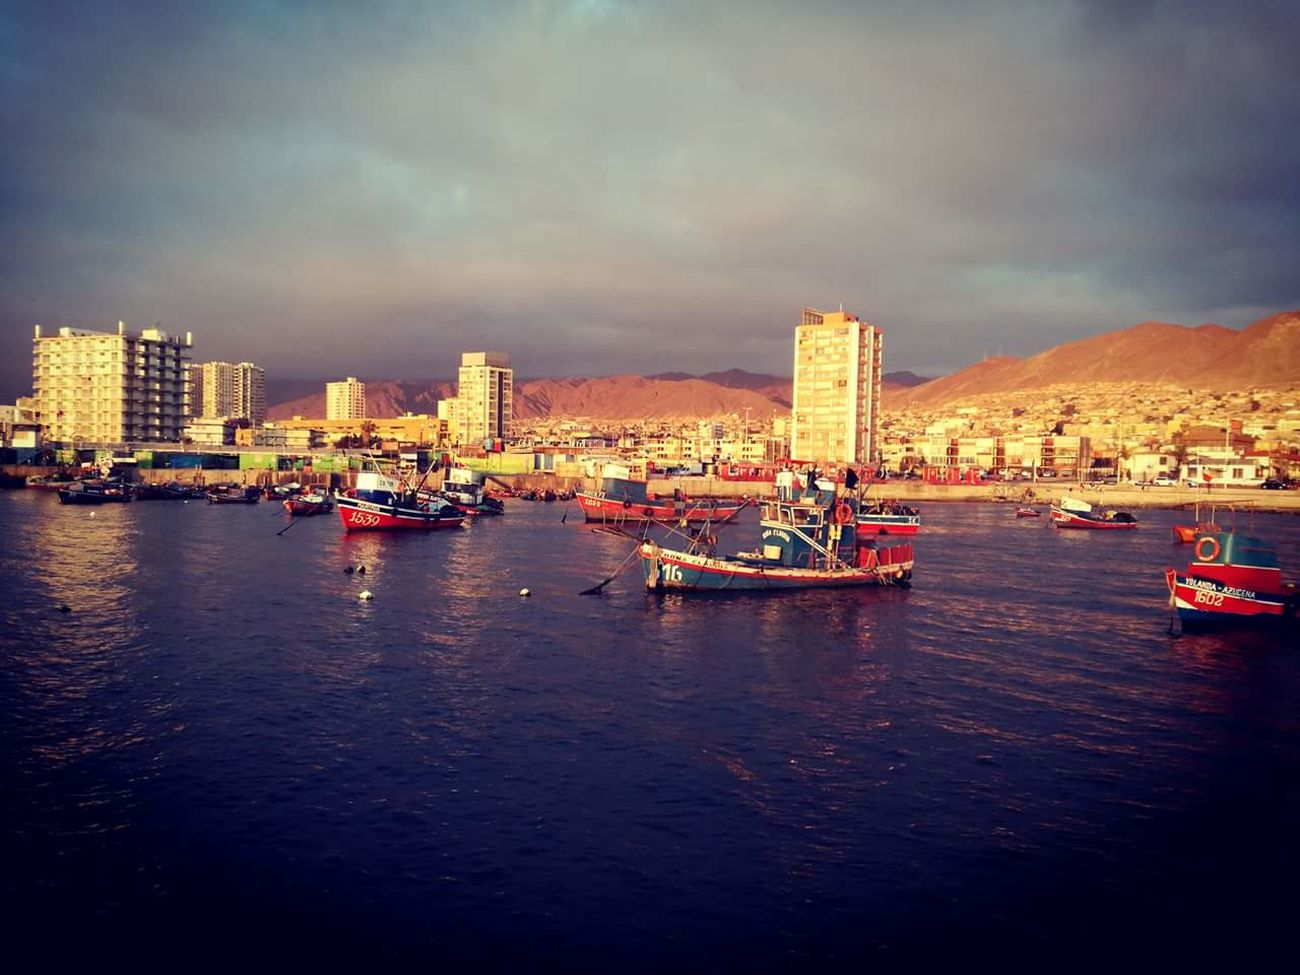 AntofagastaChile Huaweip9lite Antofagasta Horizon Over Water AntofagastaCity No People Nature Port